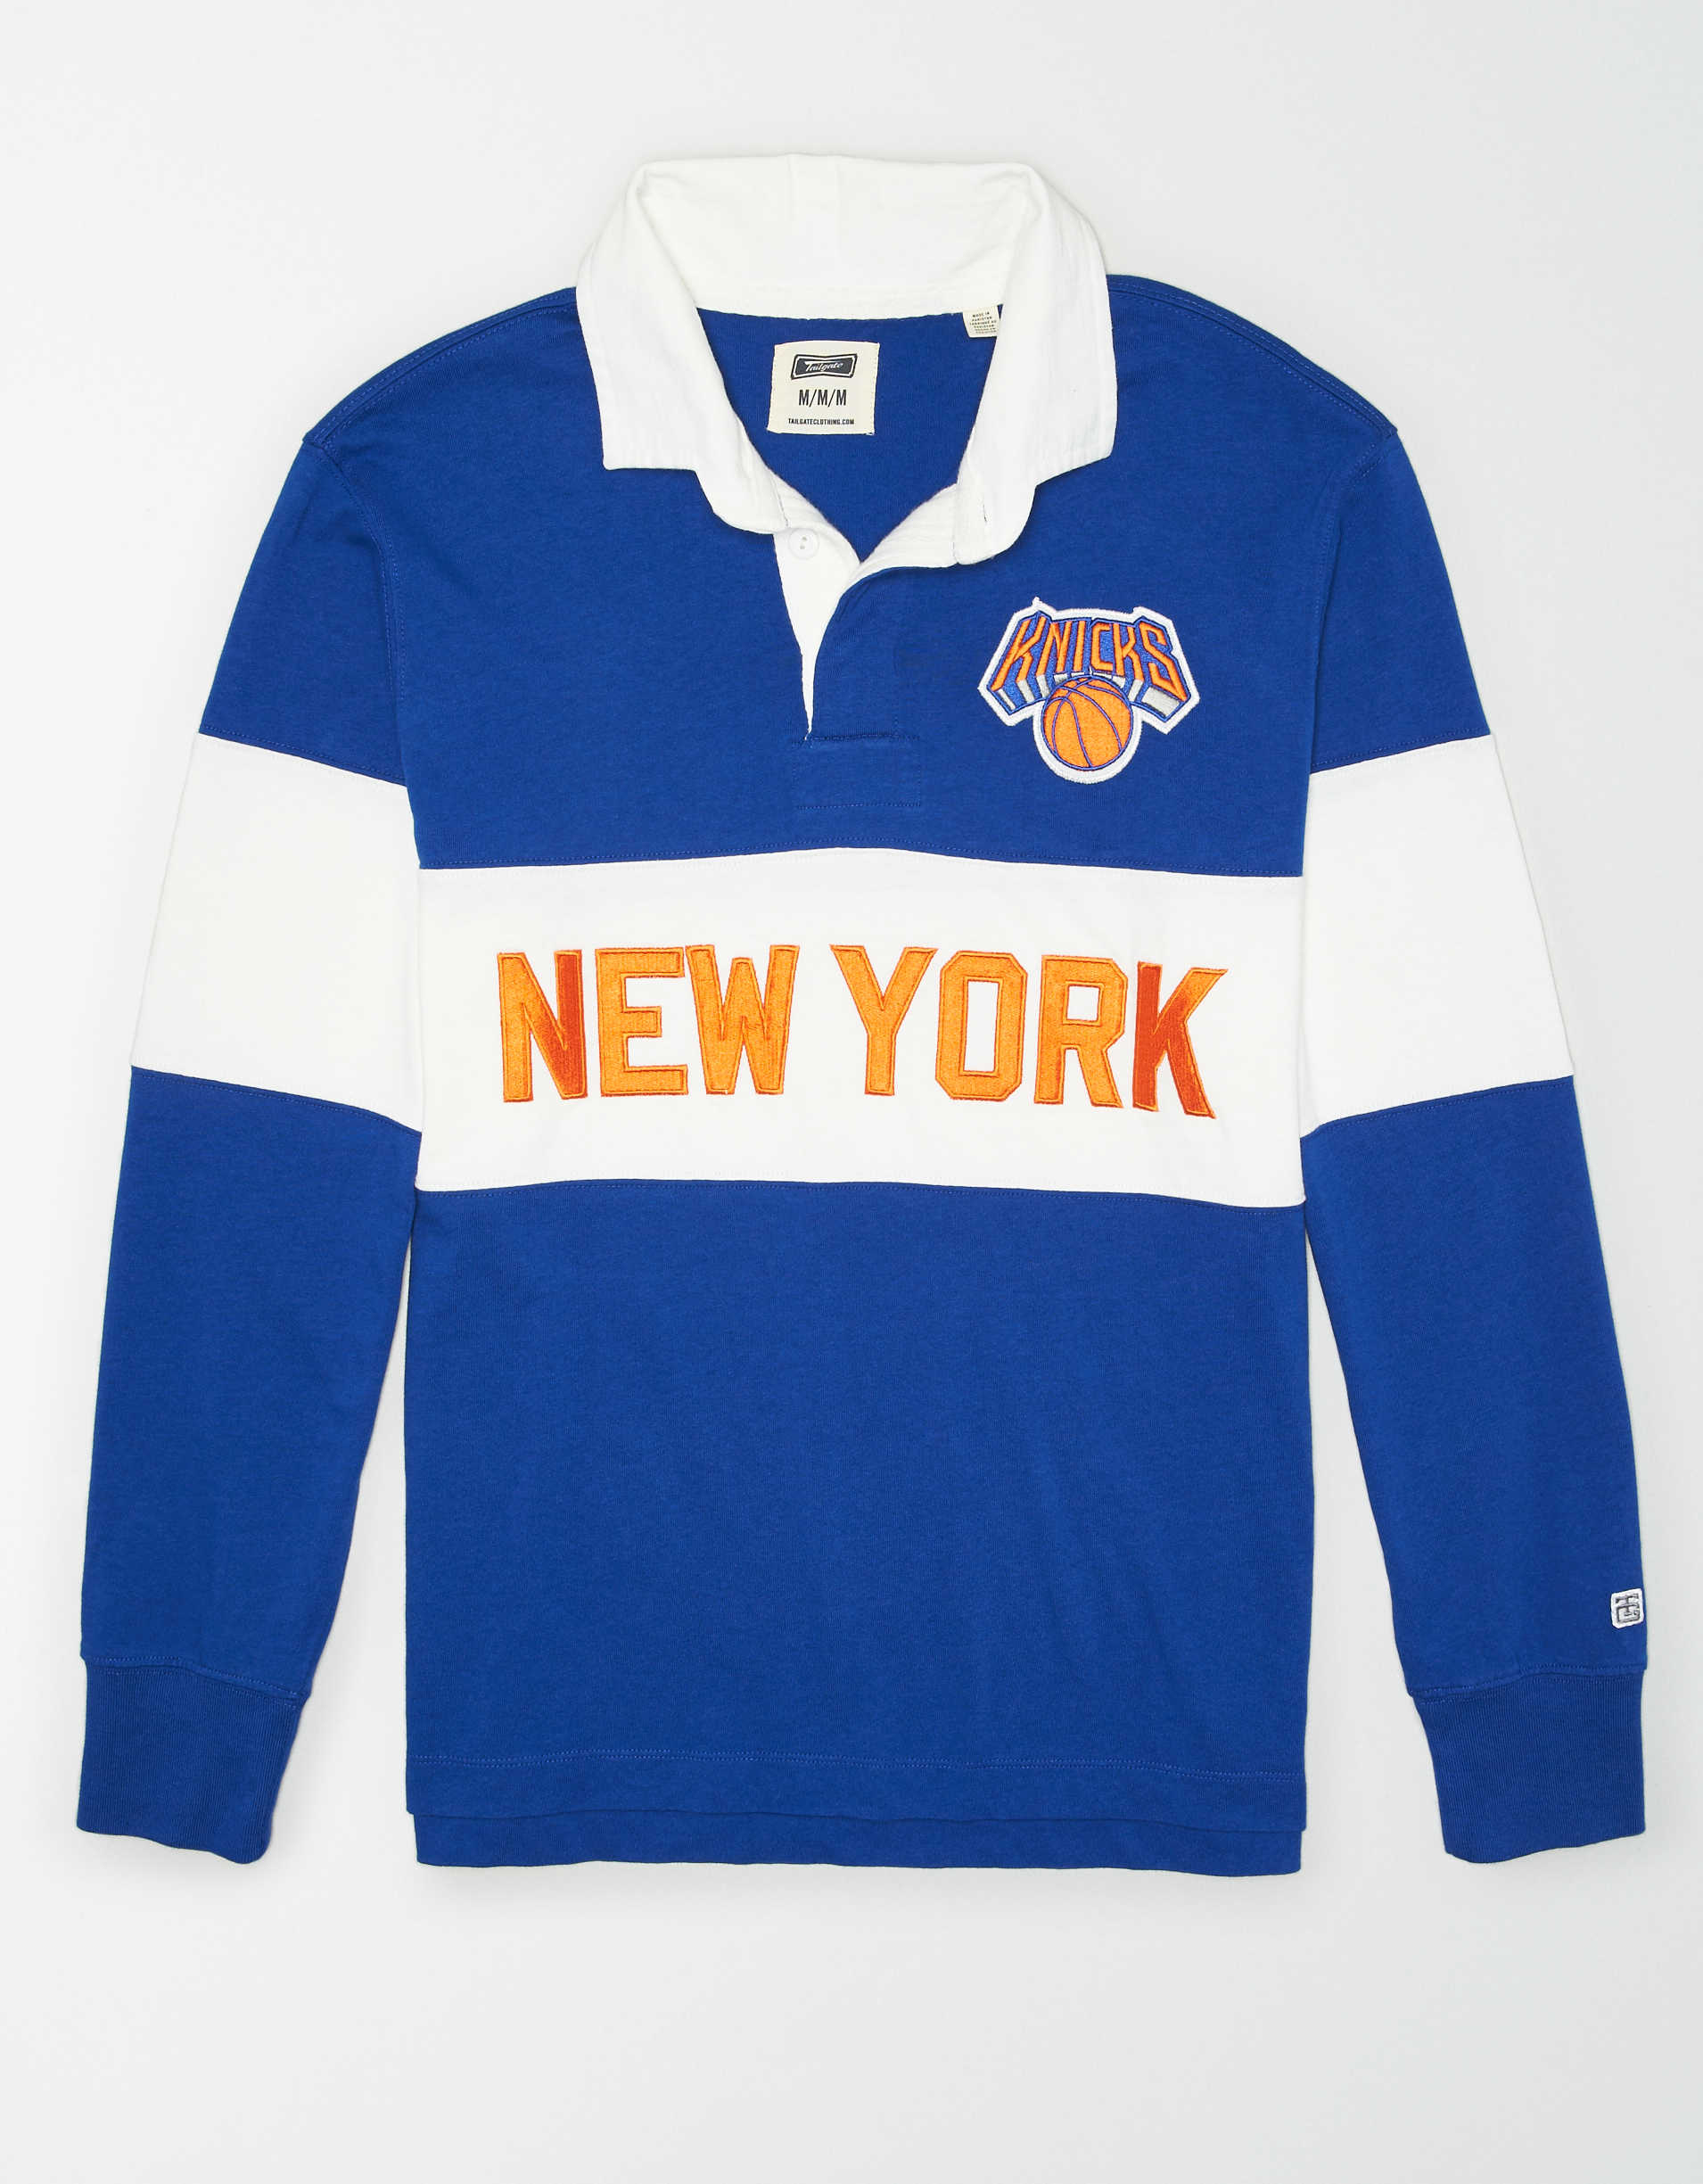 Tailgate Men's New York Knicks Rugby Shirt